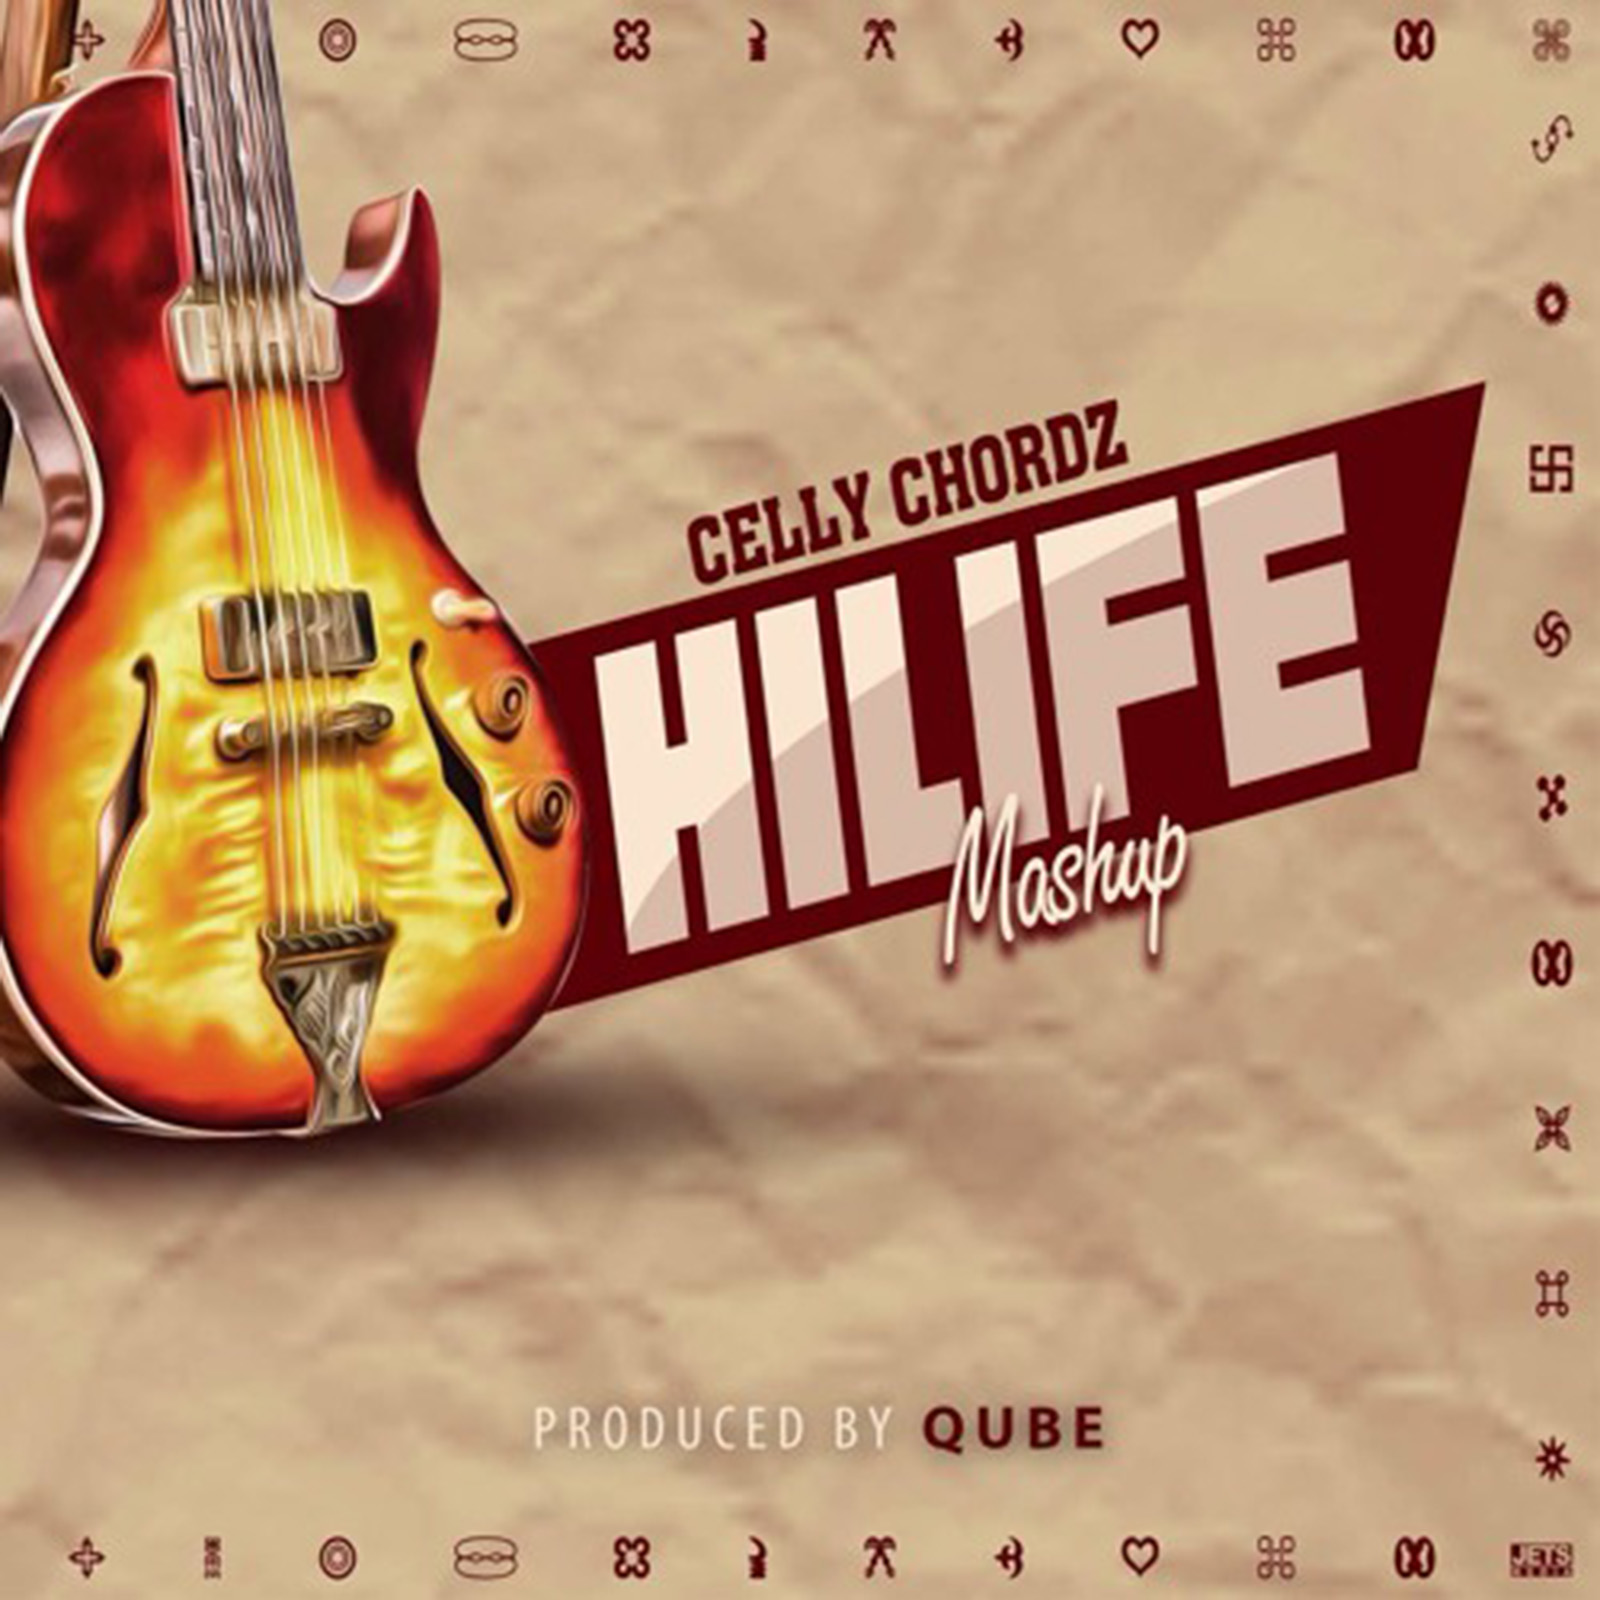 Hilife Mashup by Celly Chordz